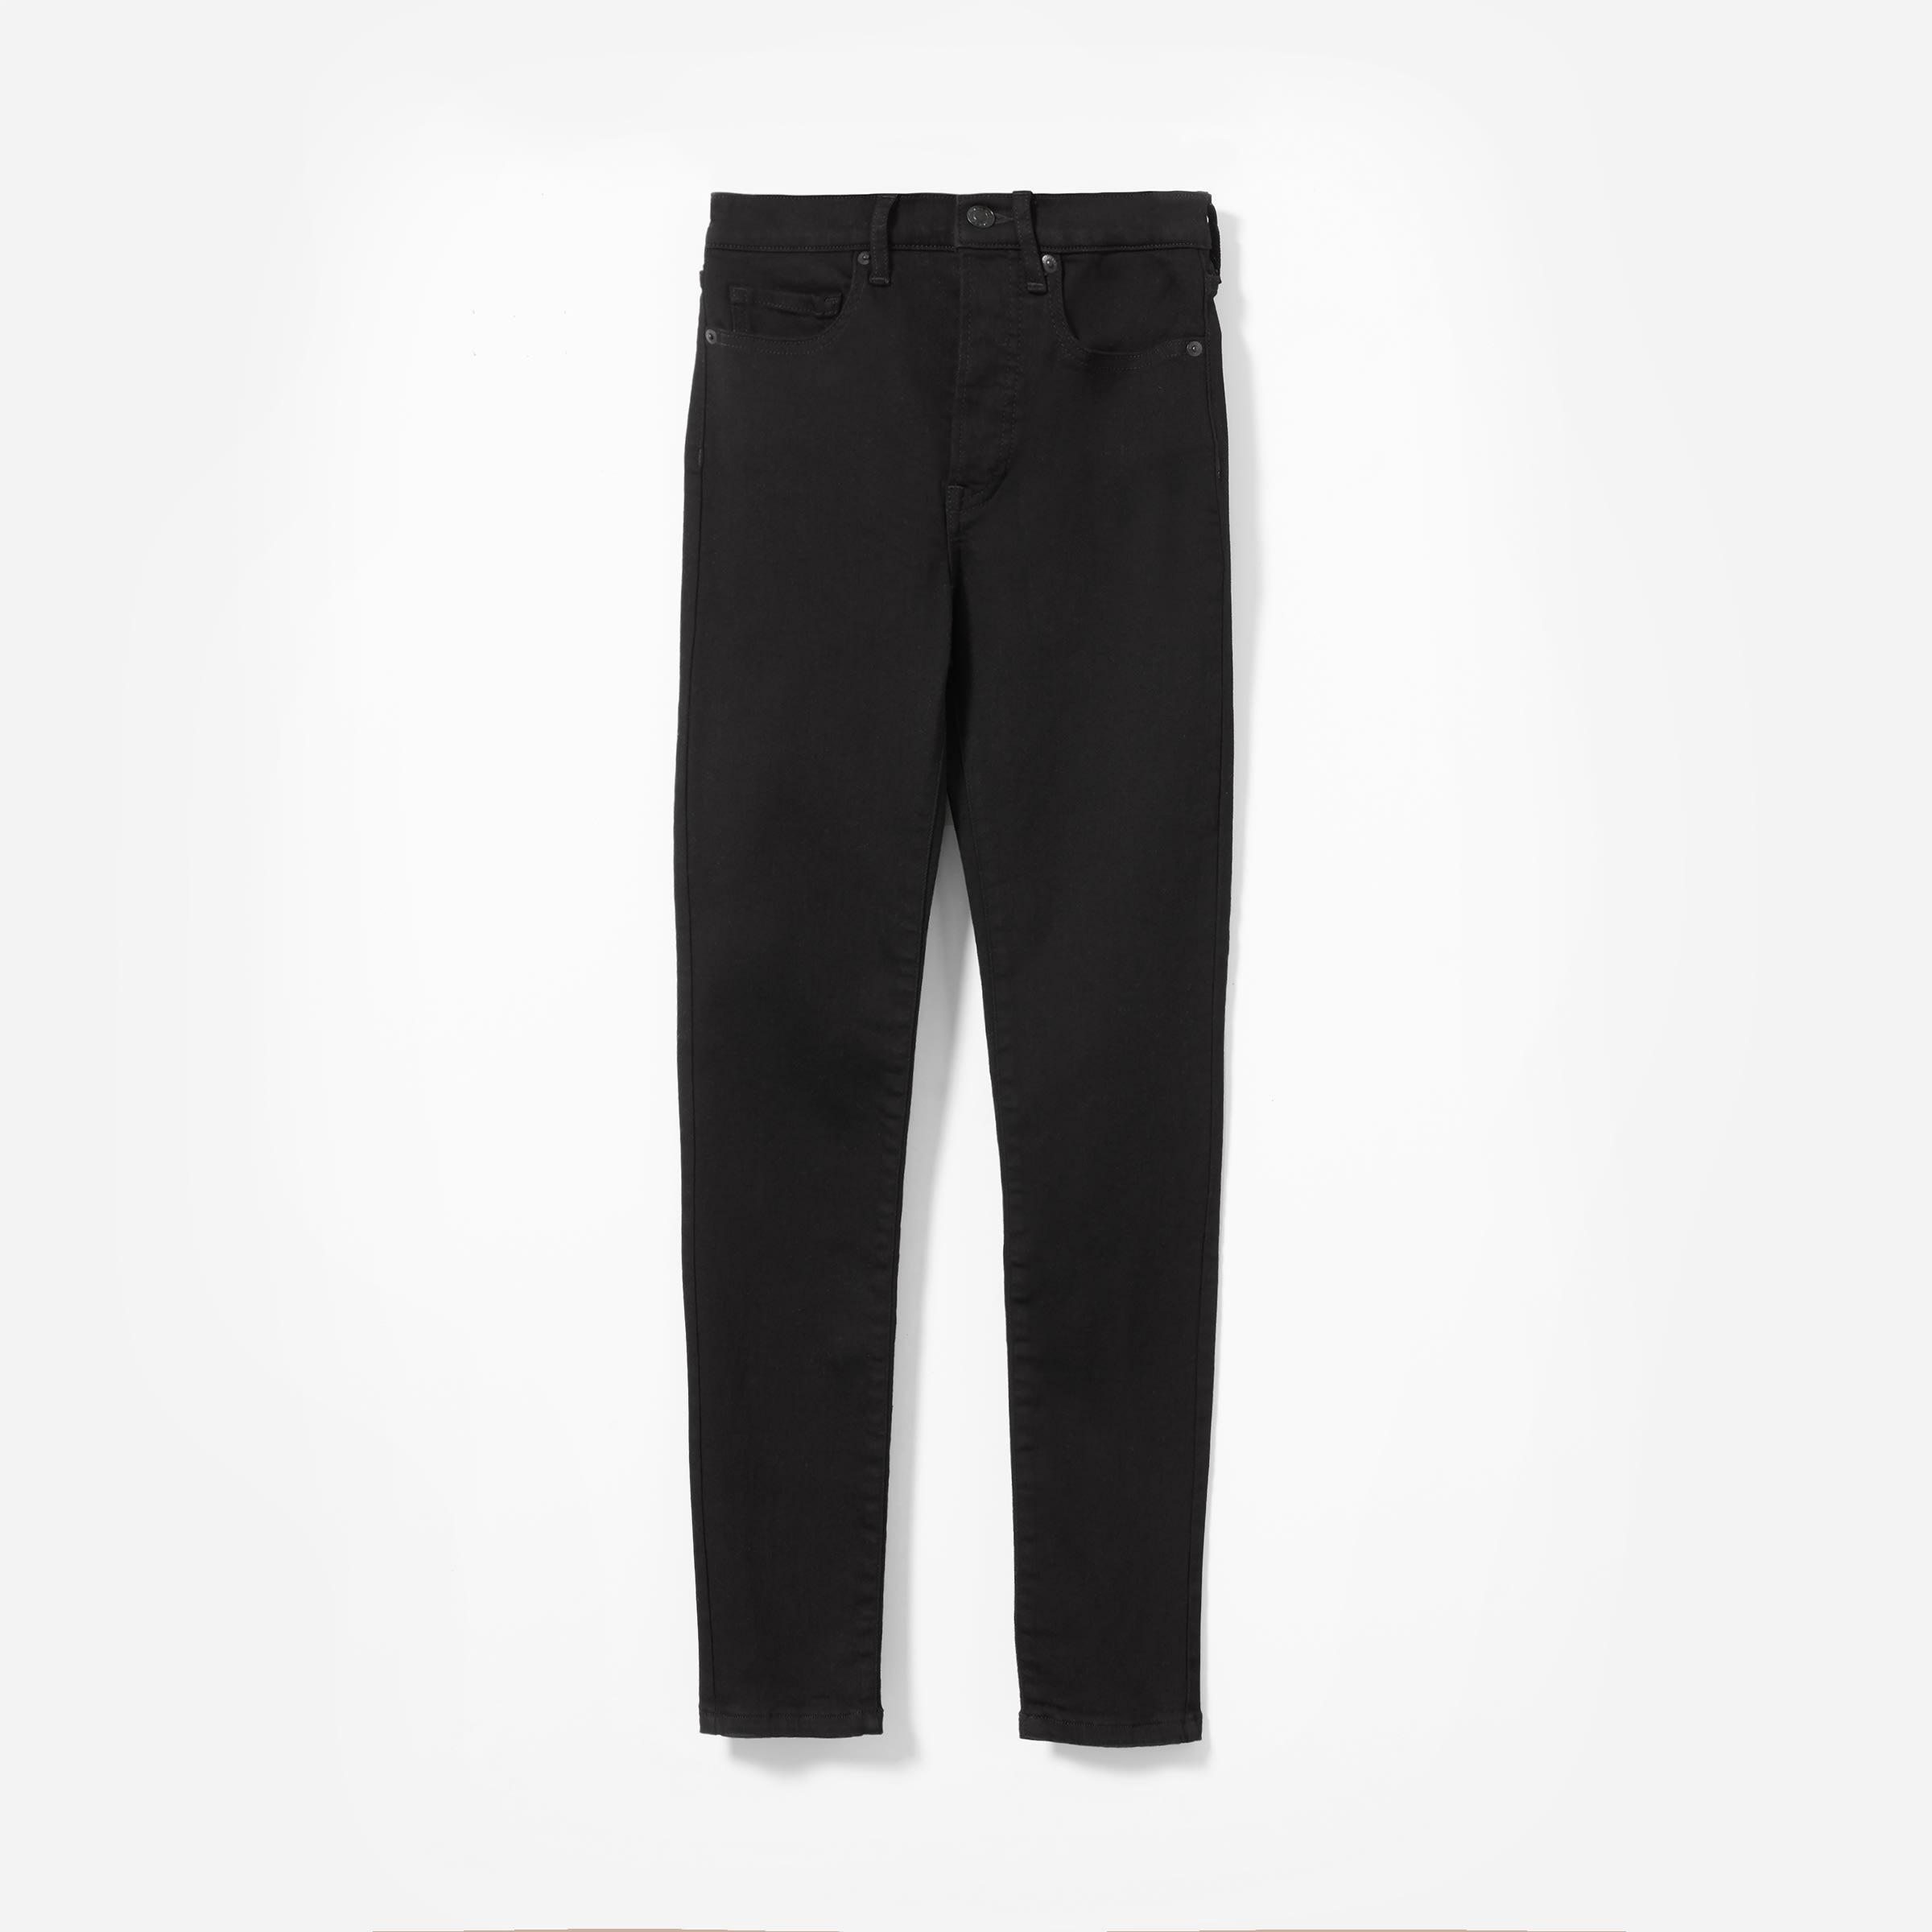 The Authentic Stretch Mid-Rise Skinny 5